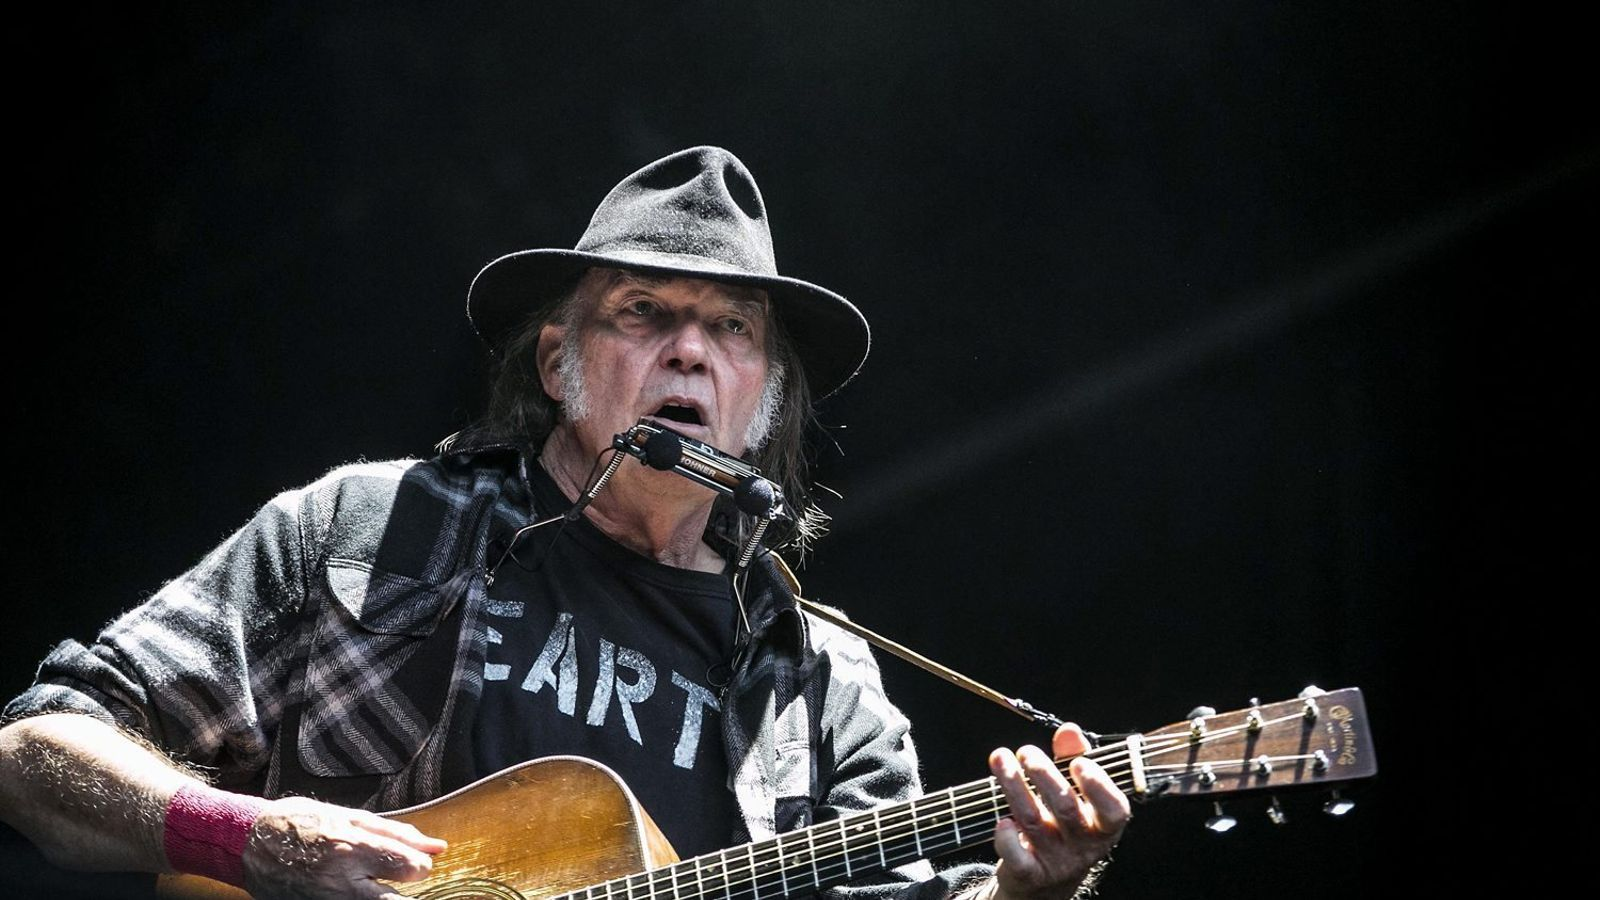 La gran lliçó de rock total de Neil Young